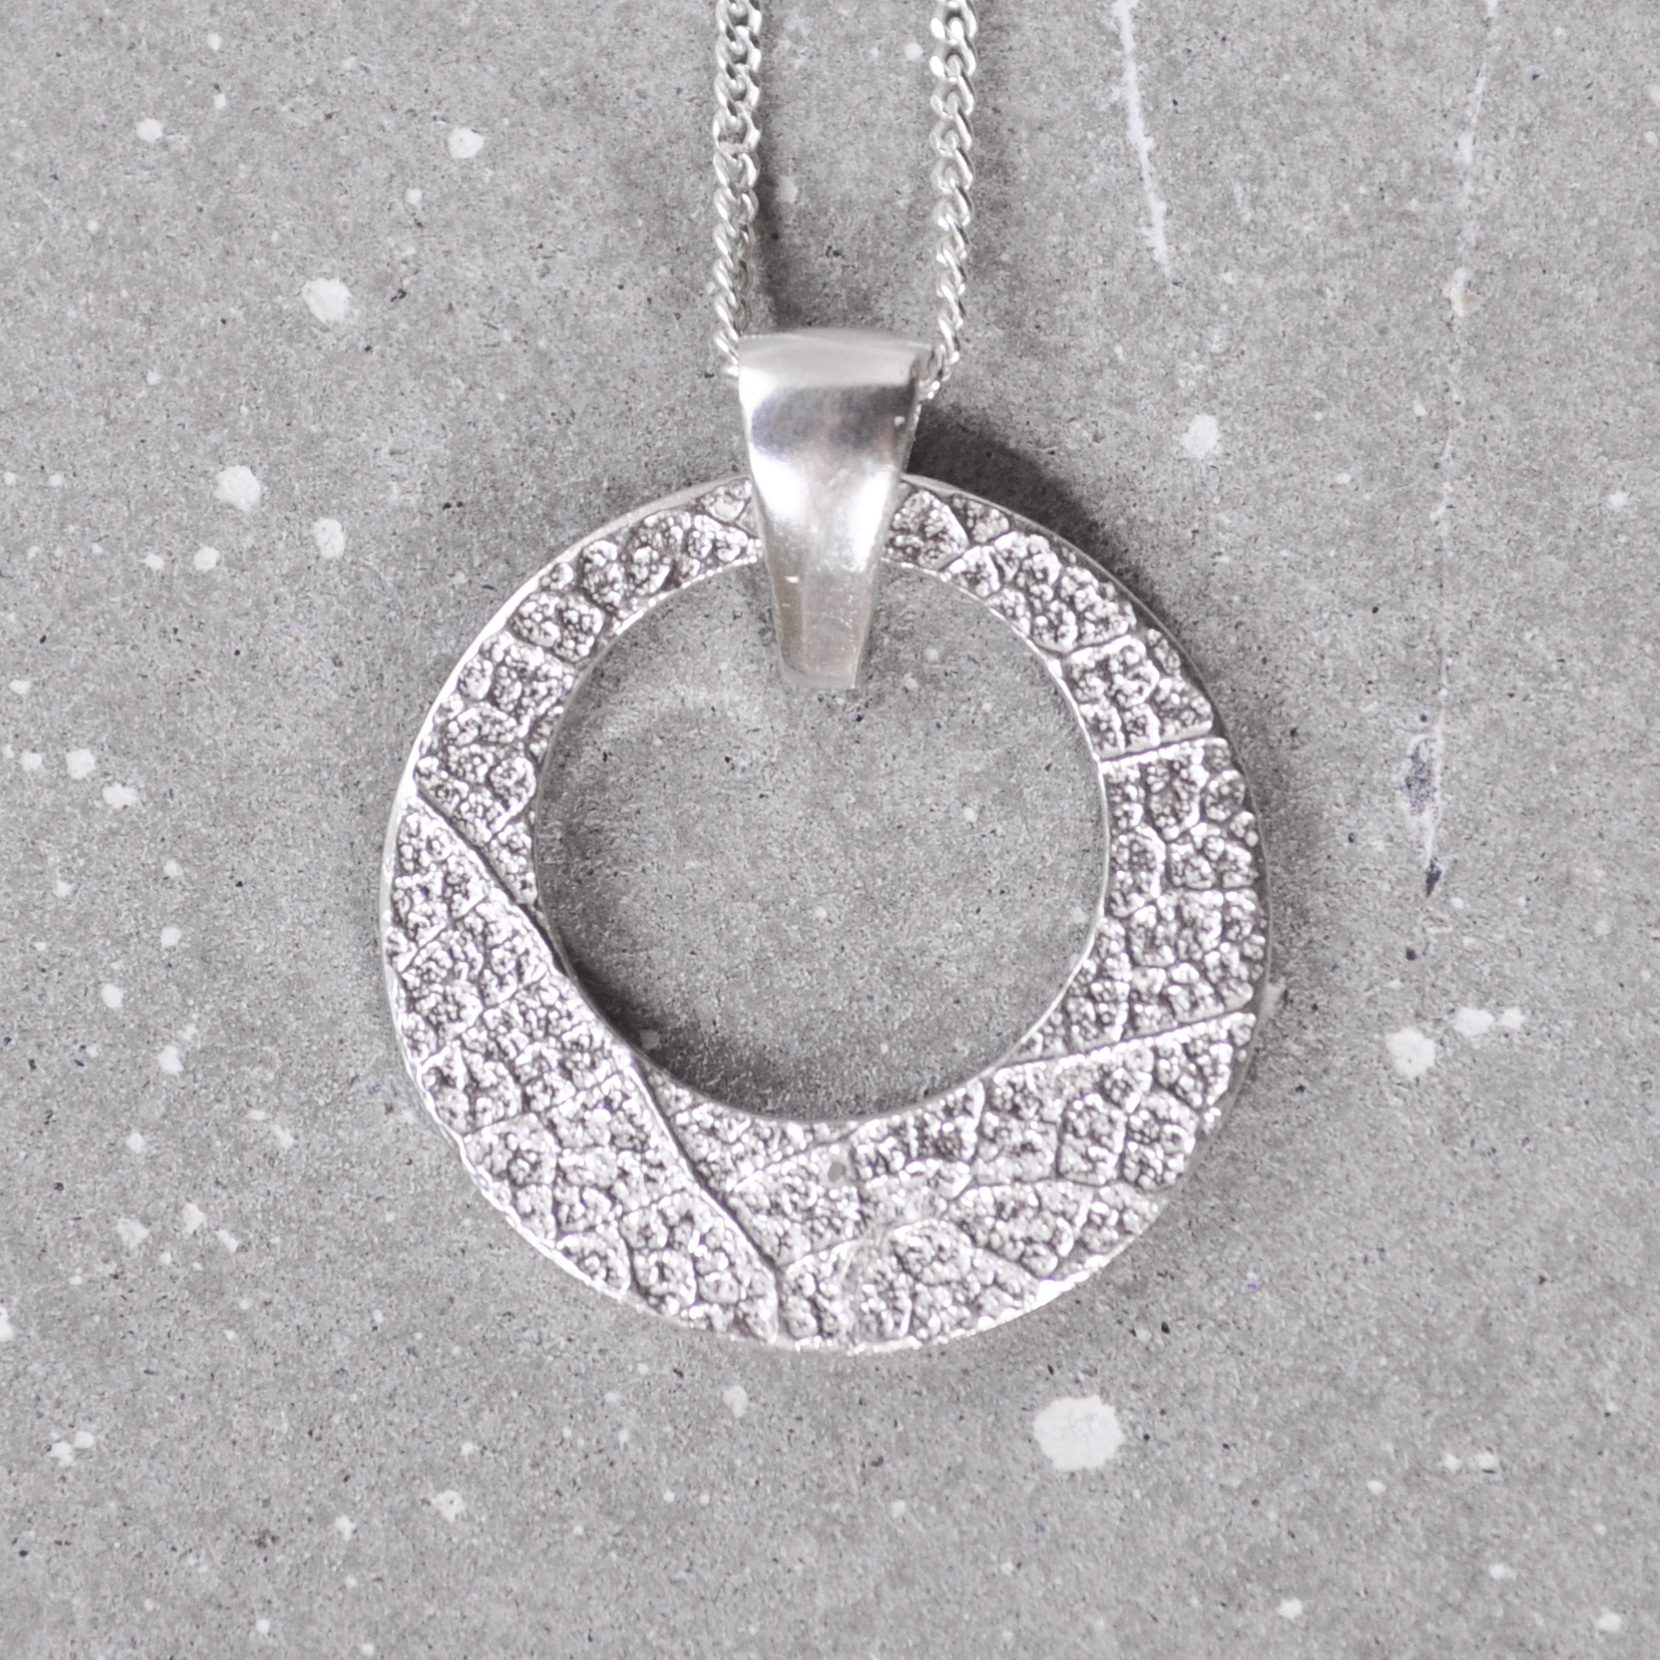 This pendant can be ordered in two textures - Coconut or Leaf texture. You can also choose the length of your chain. 